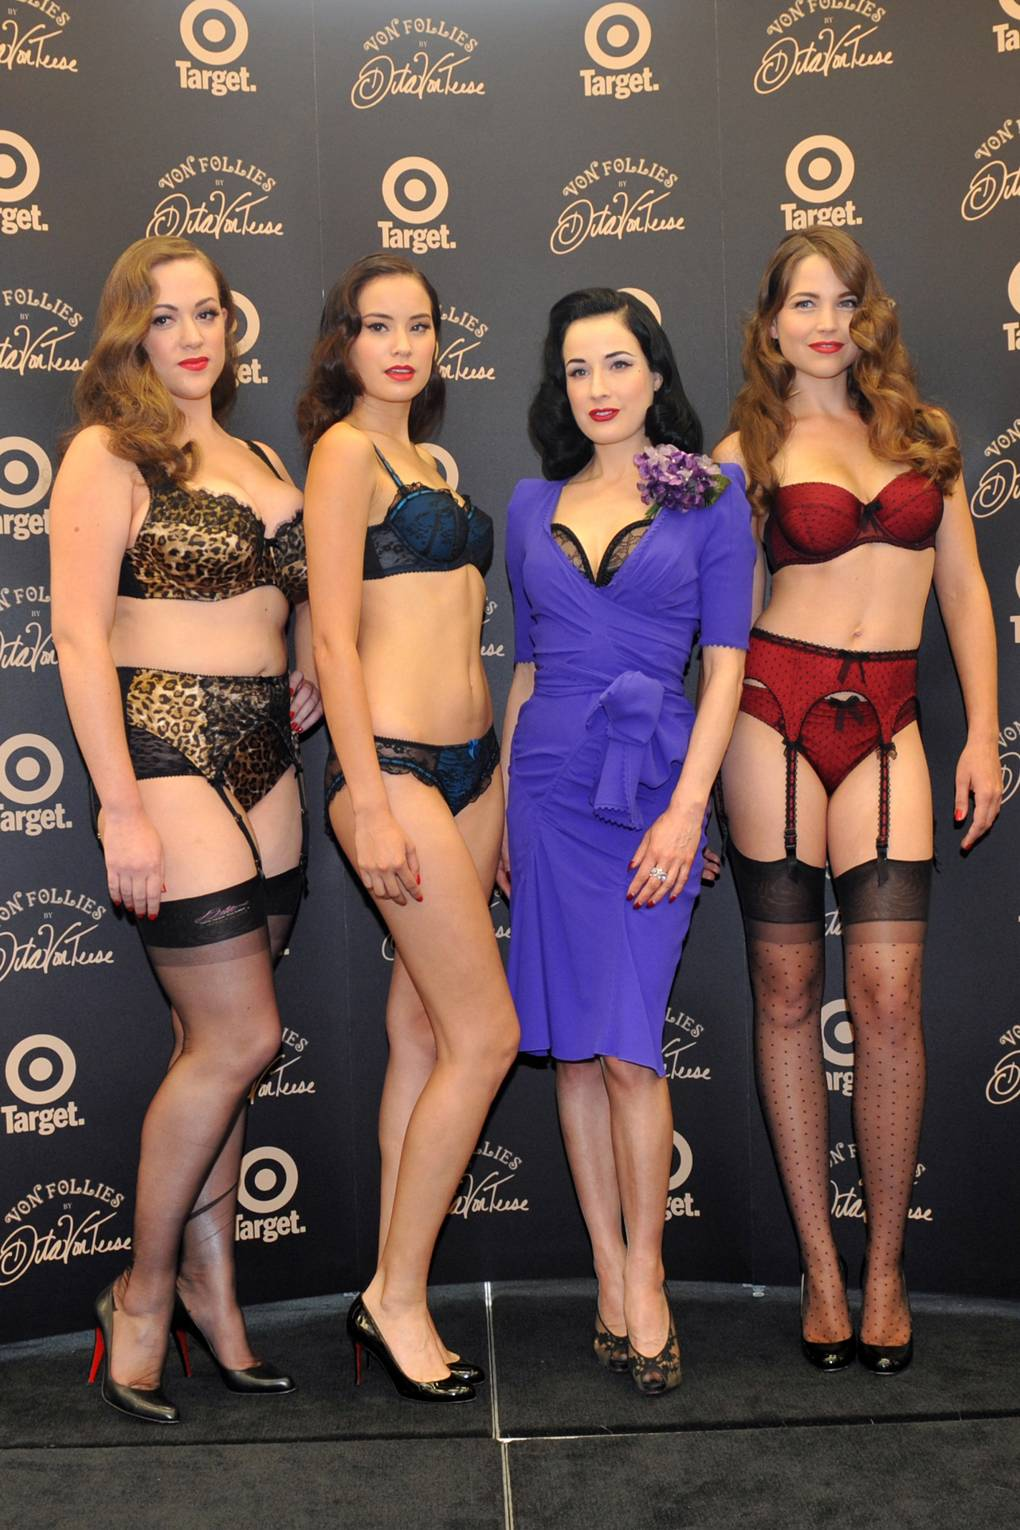 d76a210c31c Dita Von Teese Underwear   Lingerie Collection Launched